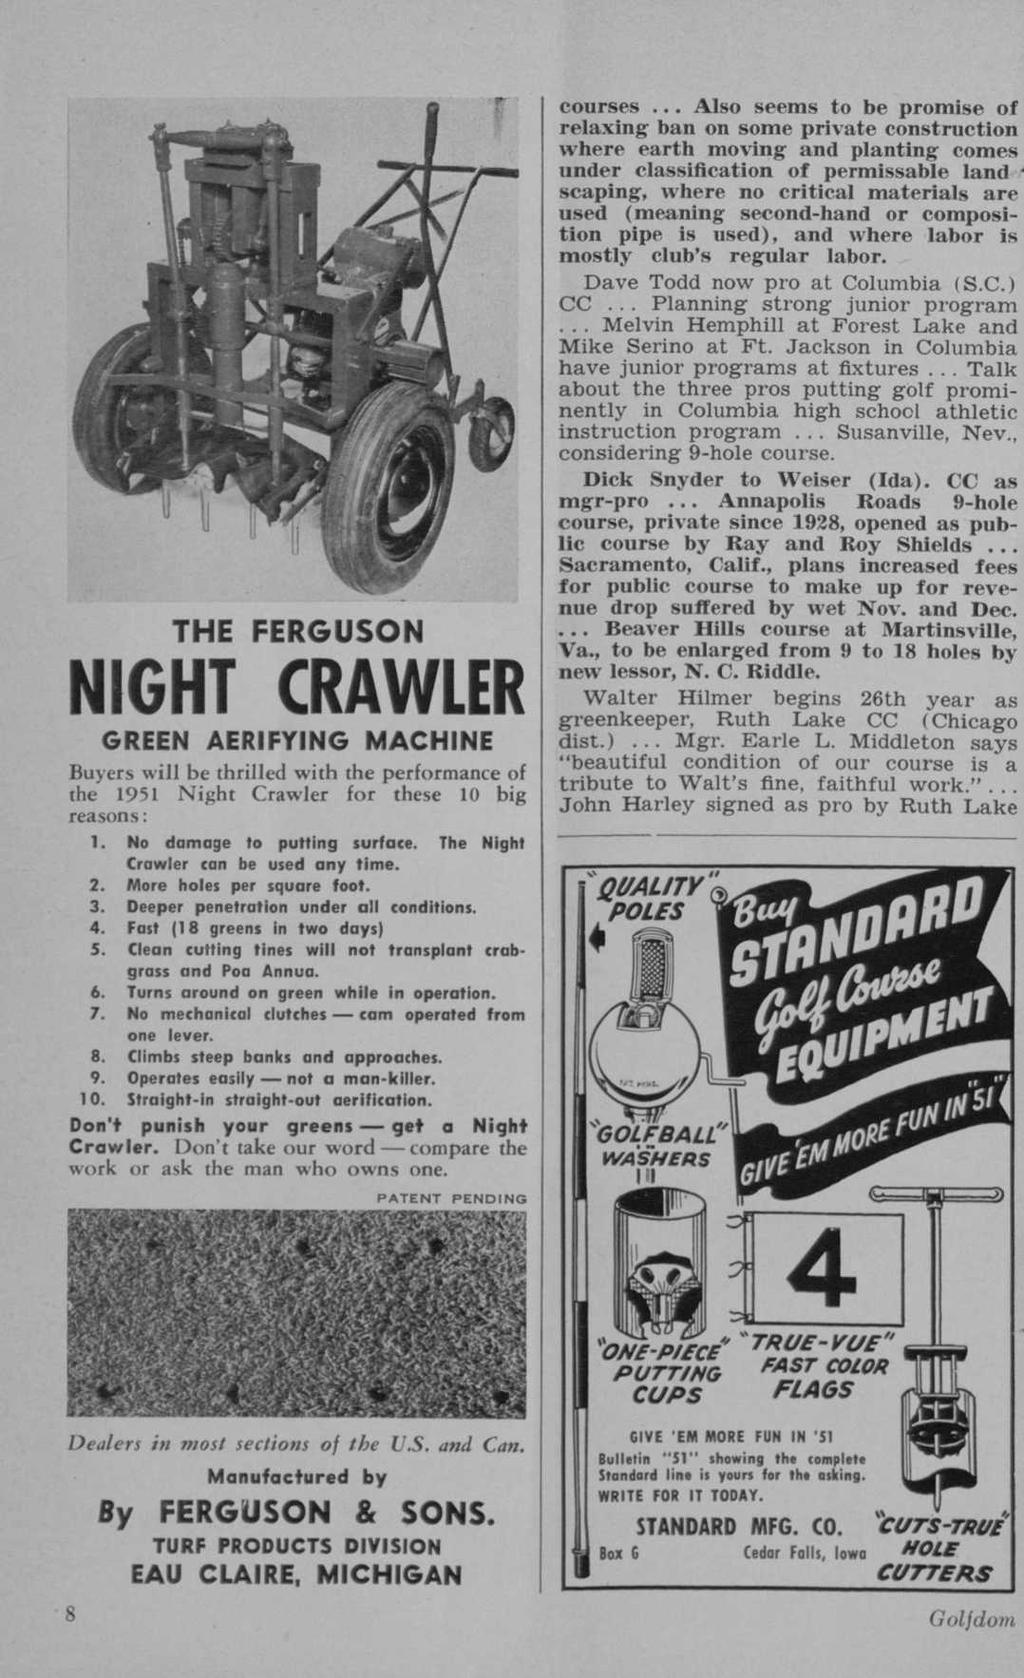 THE FERGUSON NIGHT CRAWLER GREEN AERIFYING MACHINE Buyers will be thrilled with the performance of the 1951 Night Crawler for these 10 big reasons: 1. No damage to putting surface.